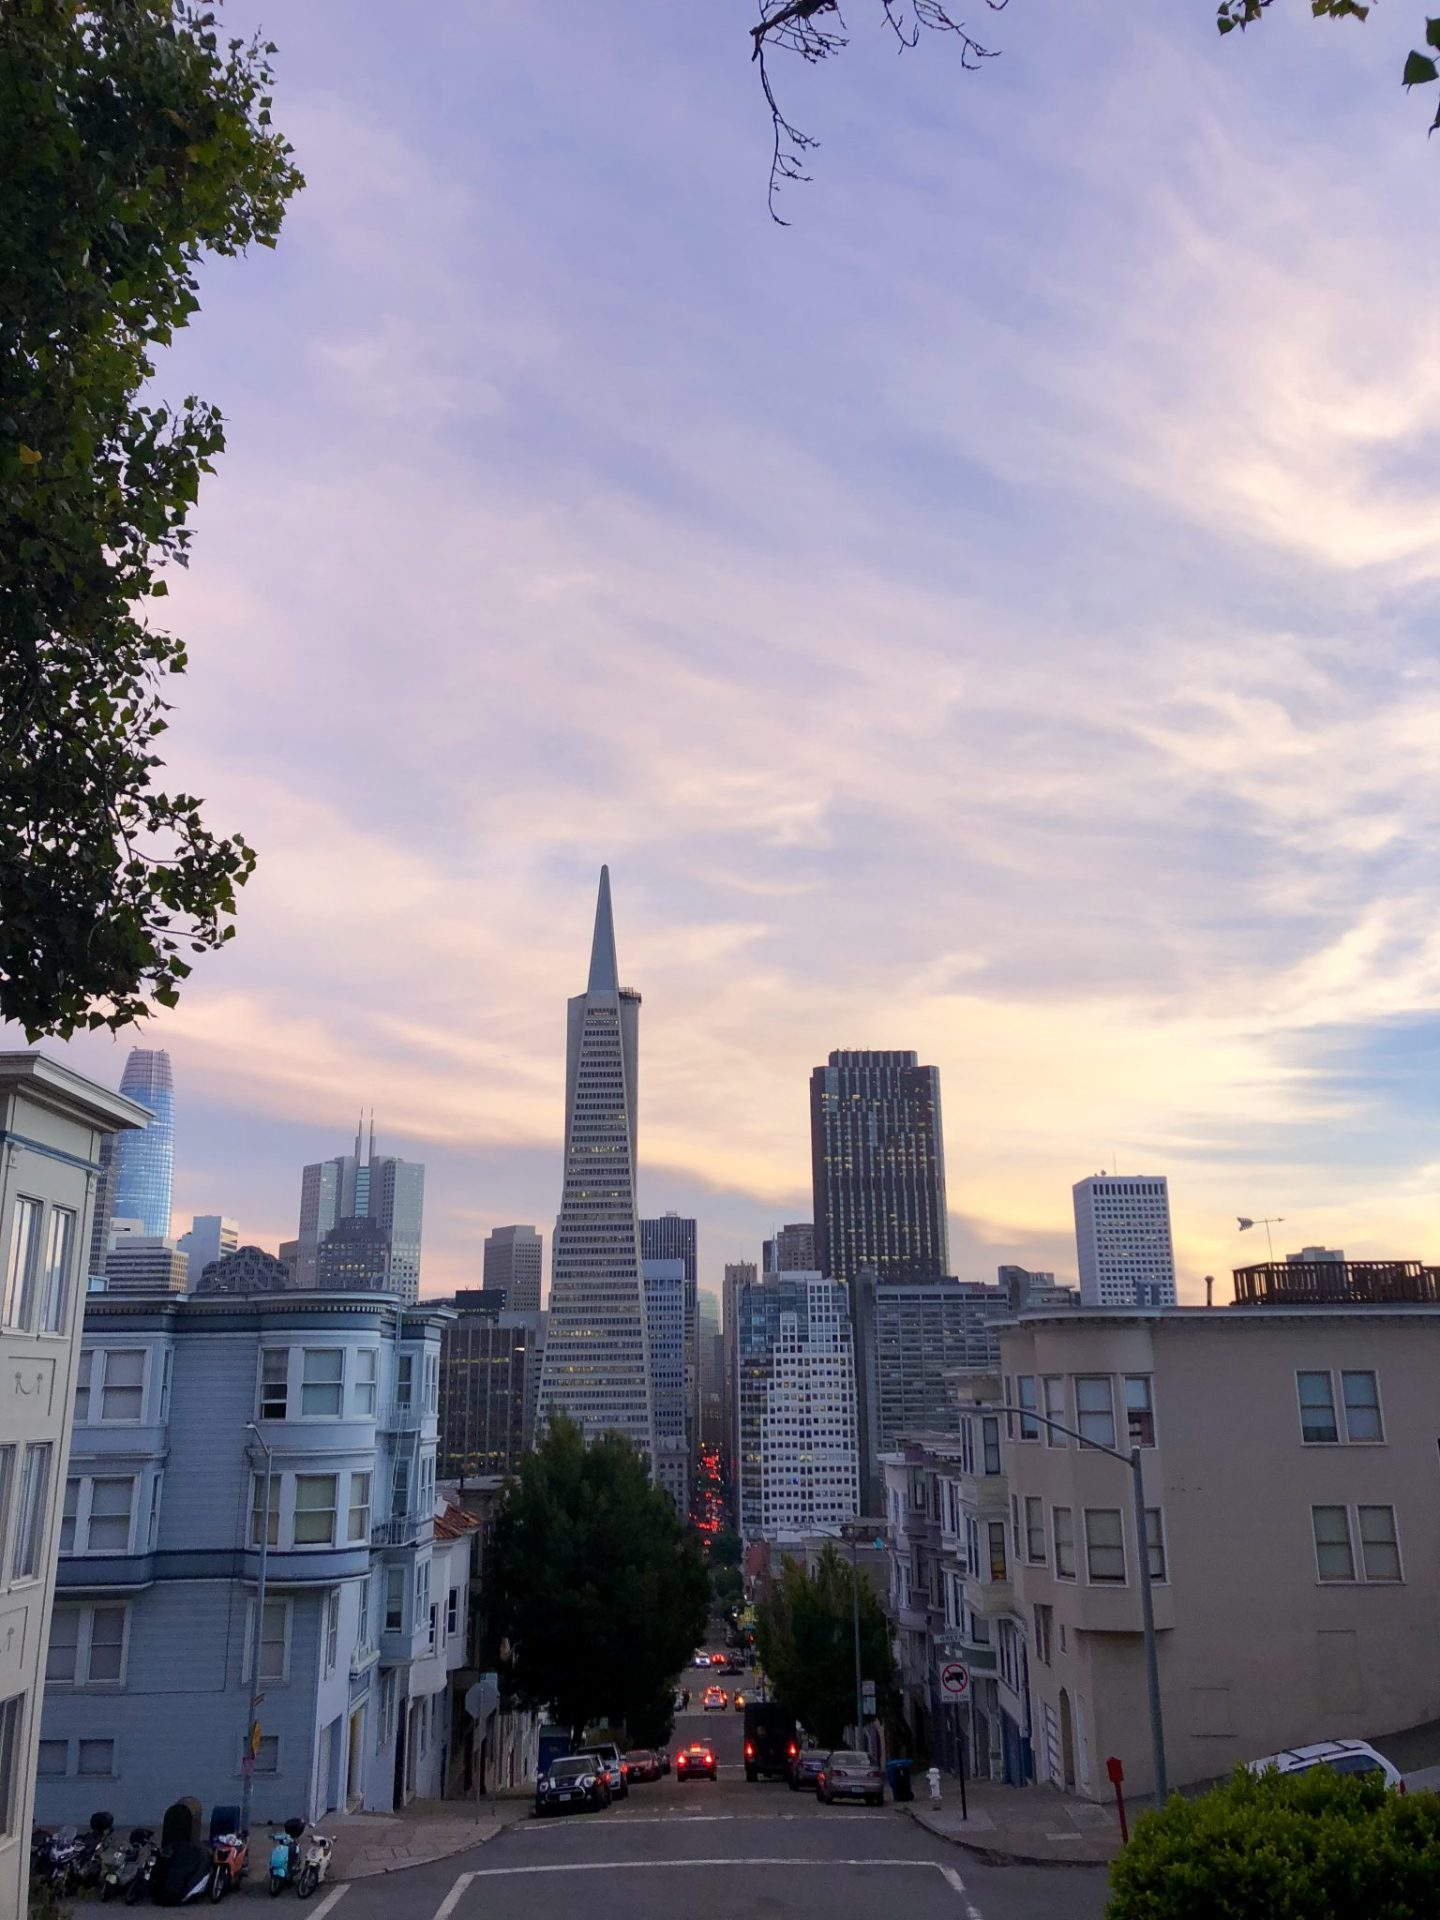 San Francisco: What I Did in a Week